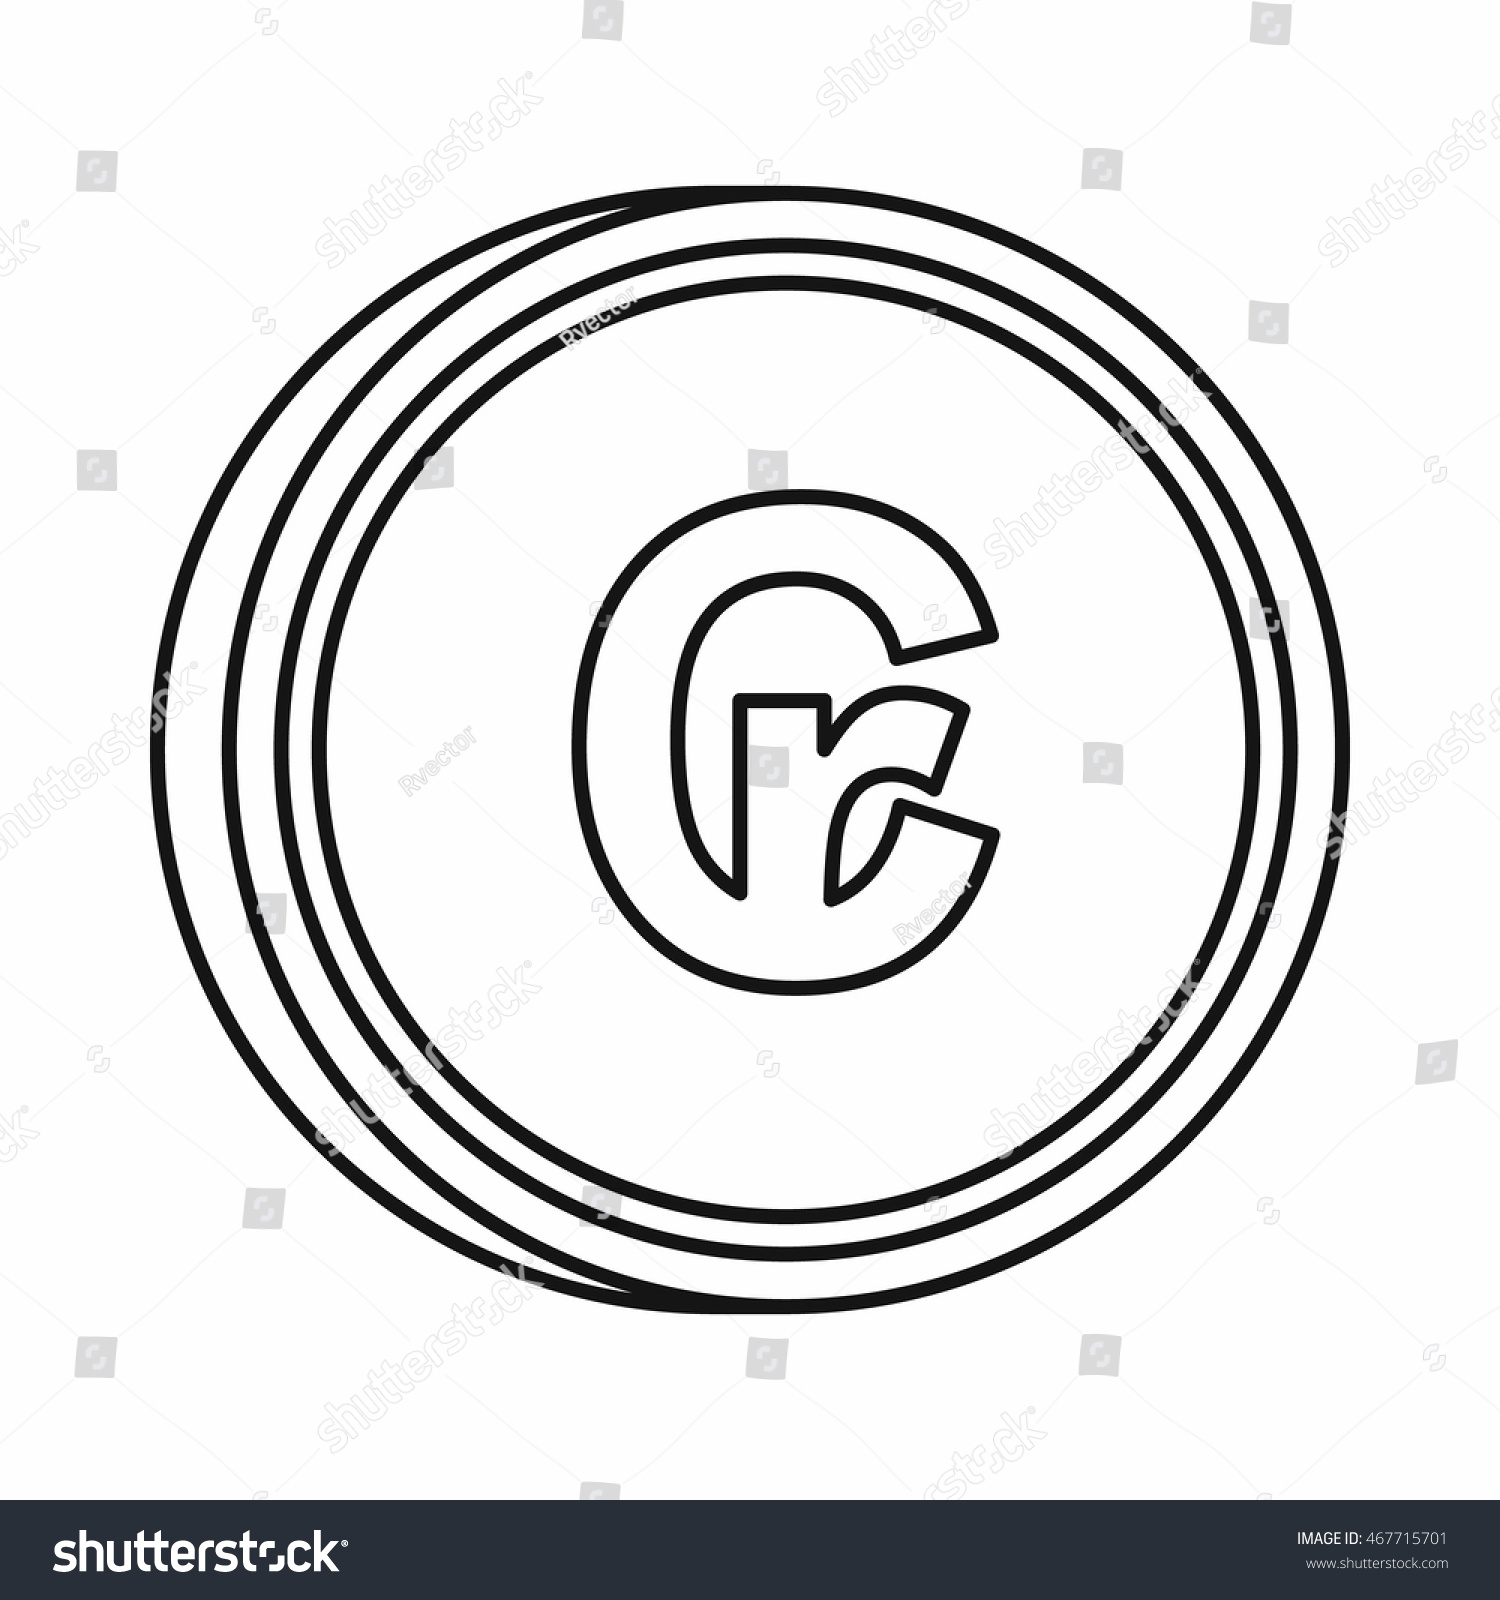 Brazilian Cruzeiro Currency Symbol Icon Outline Stock Vector